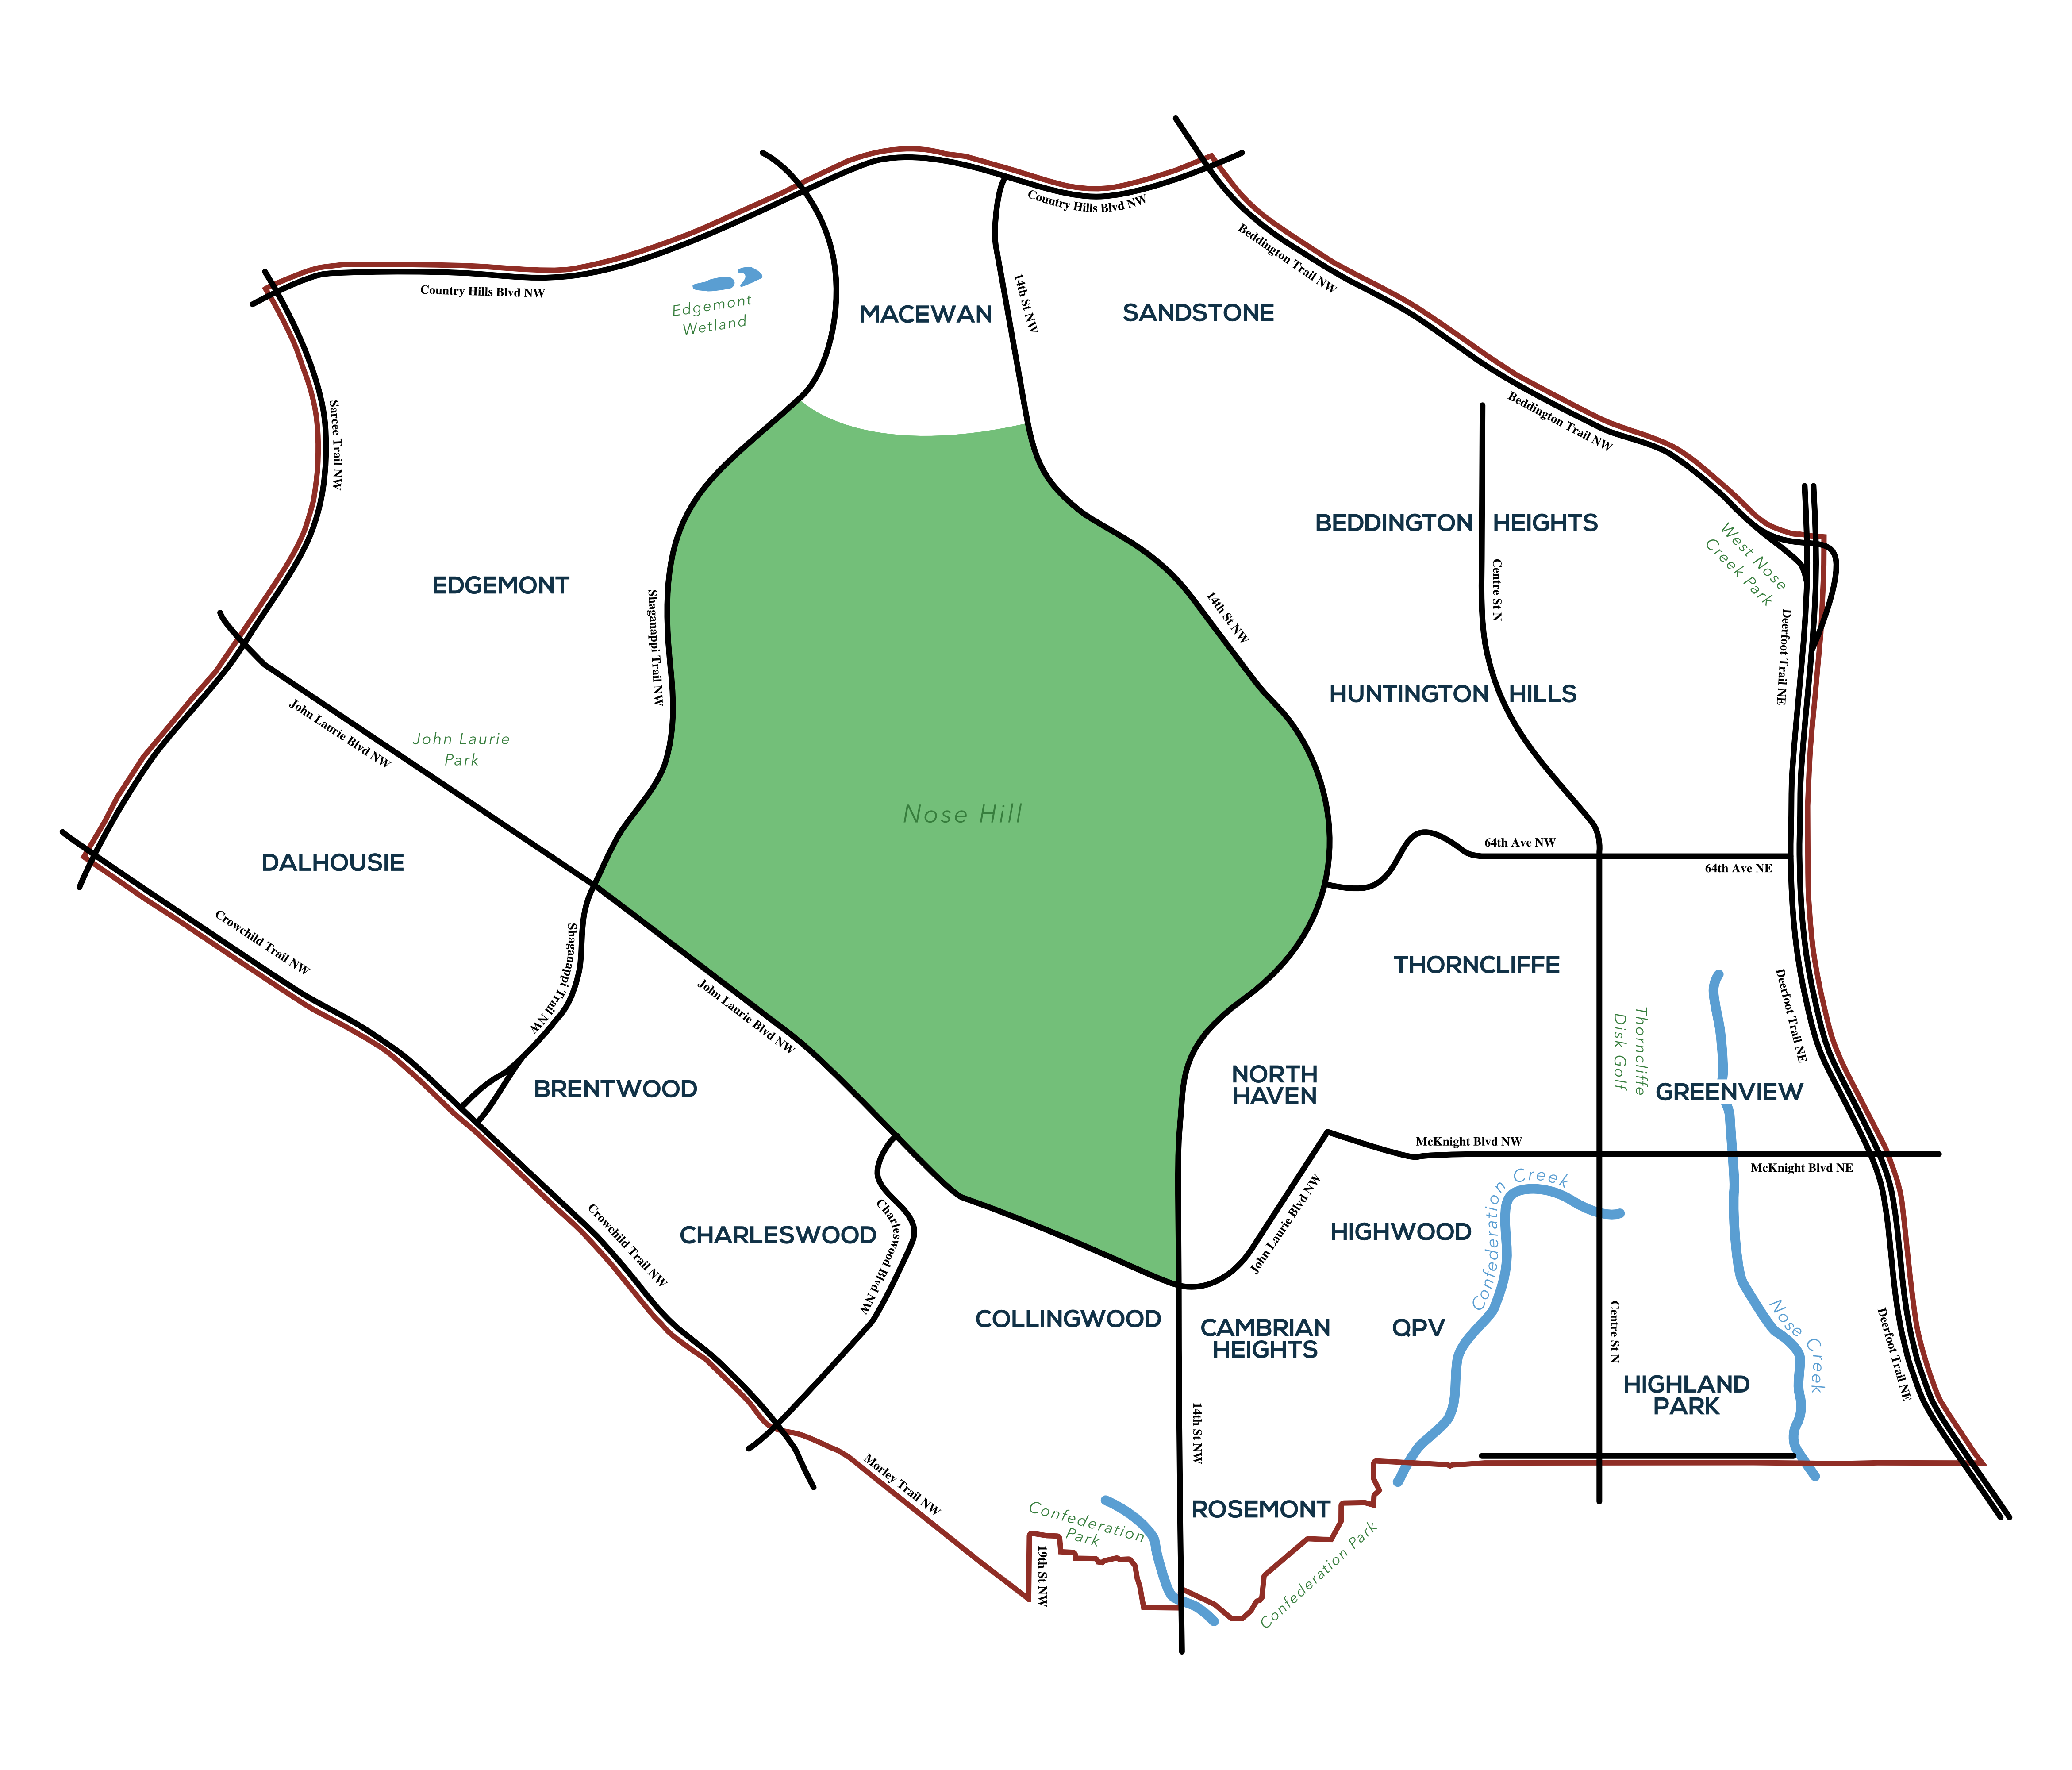 Ward_4_Map_Outlines.png